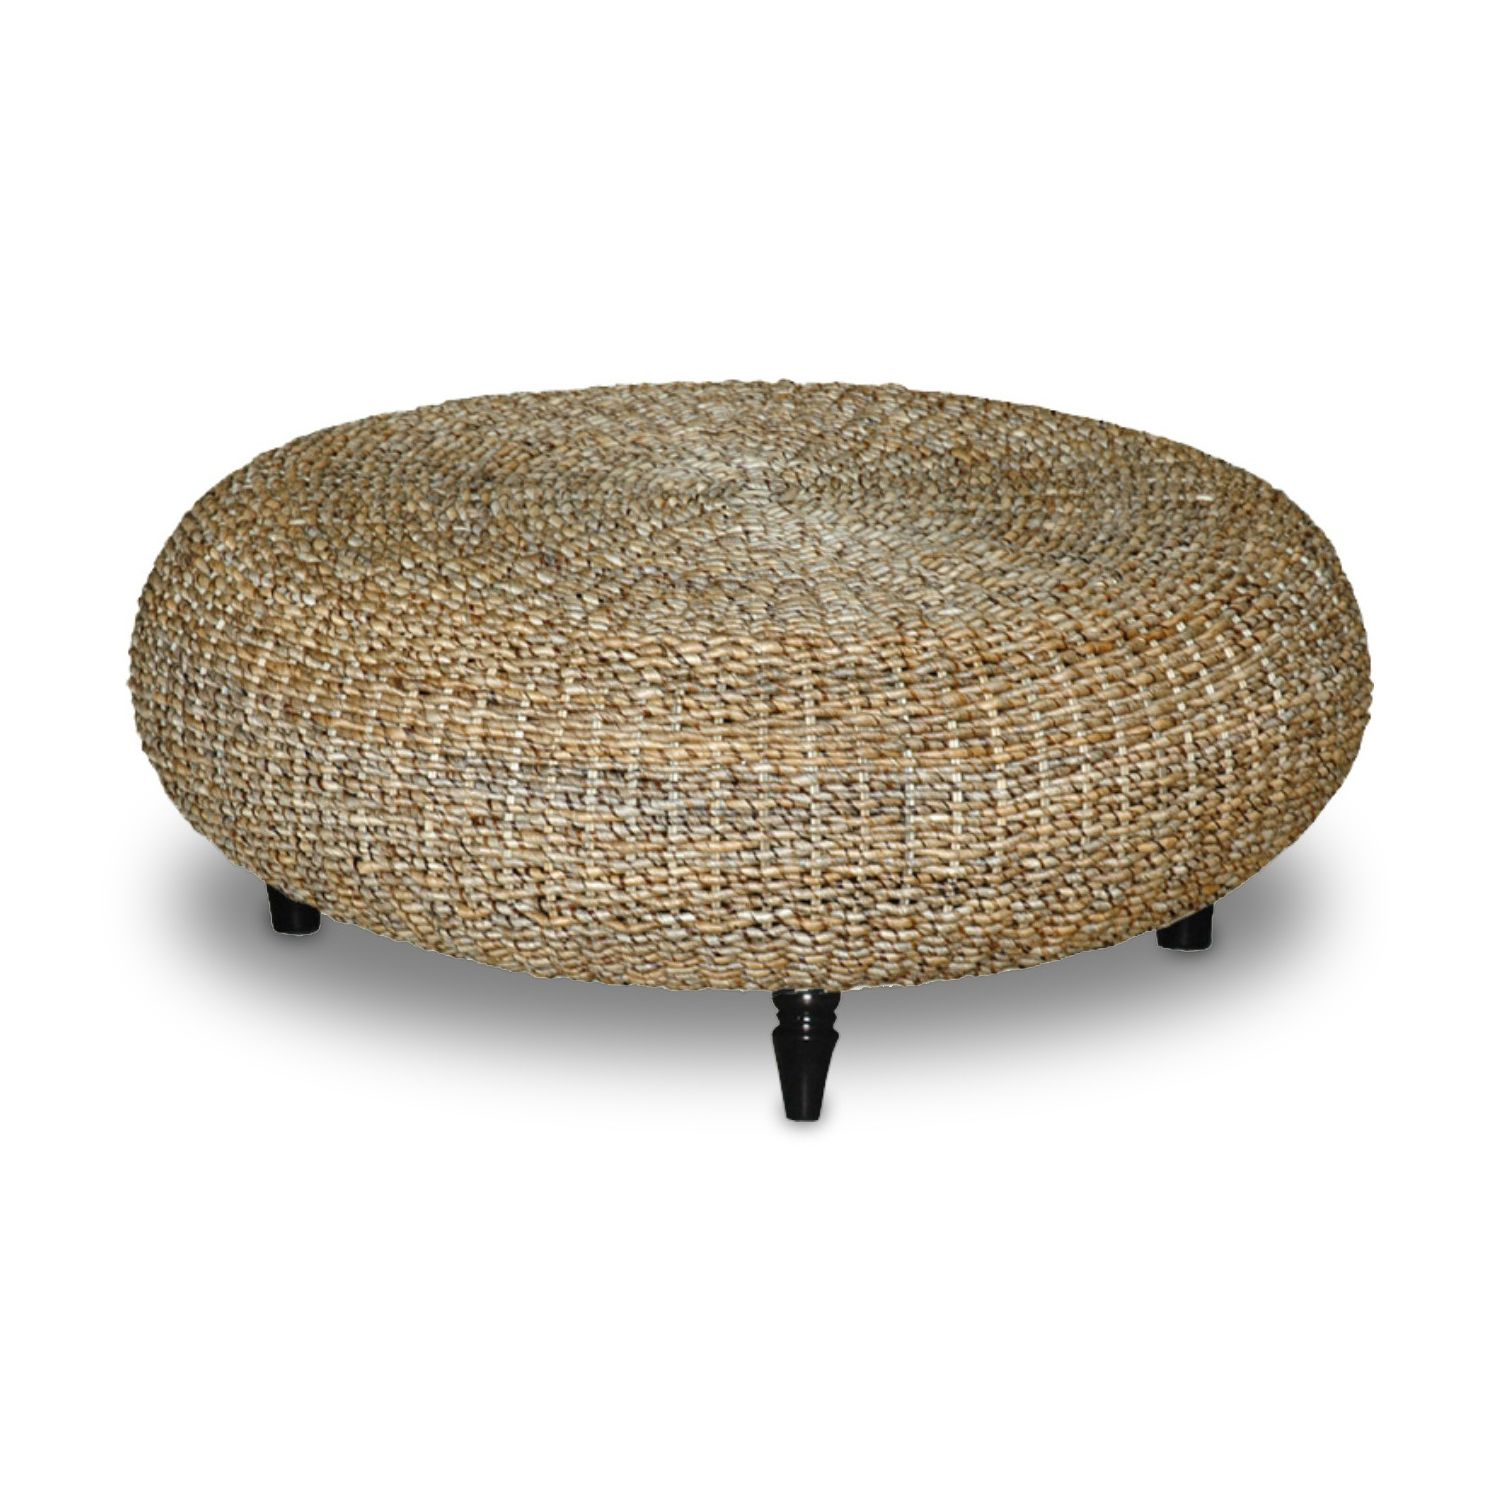 Decorative Tan Transitional Riau Round Coffee Table by Jeffan